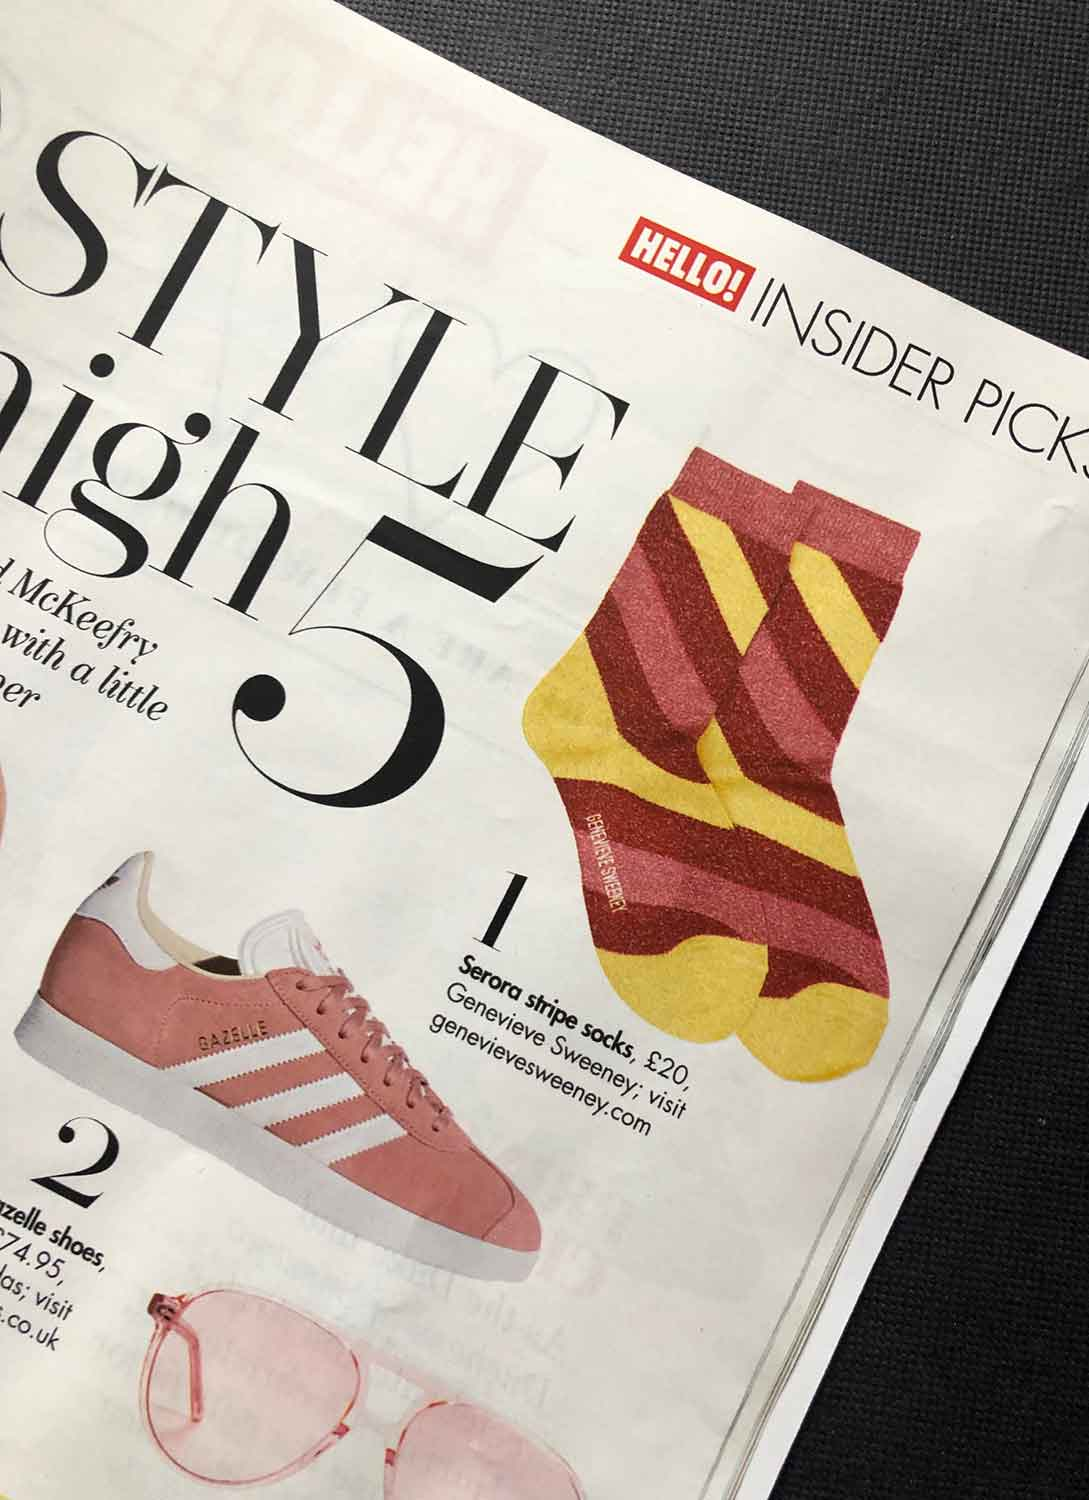 Stye High 5 Hello Magazine Sparkly Socks